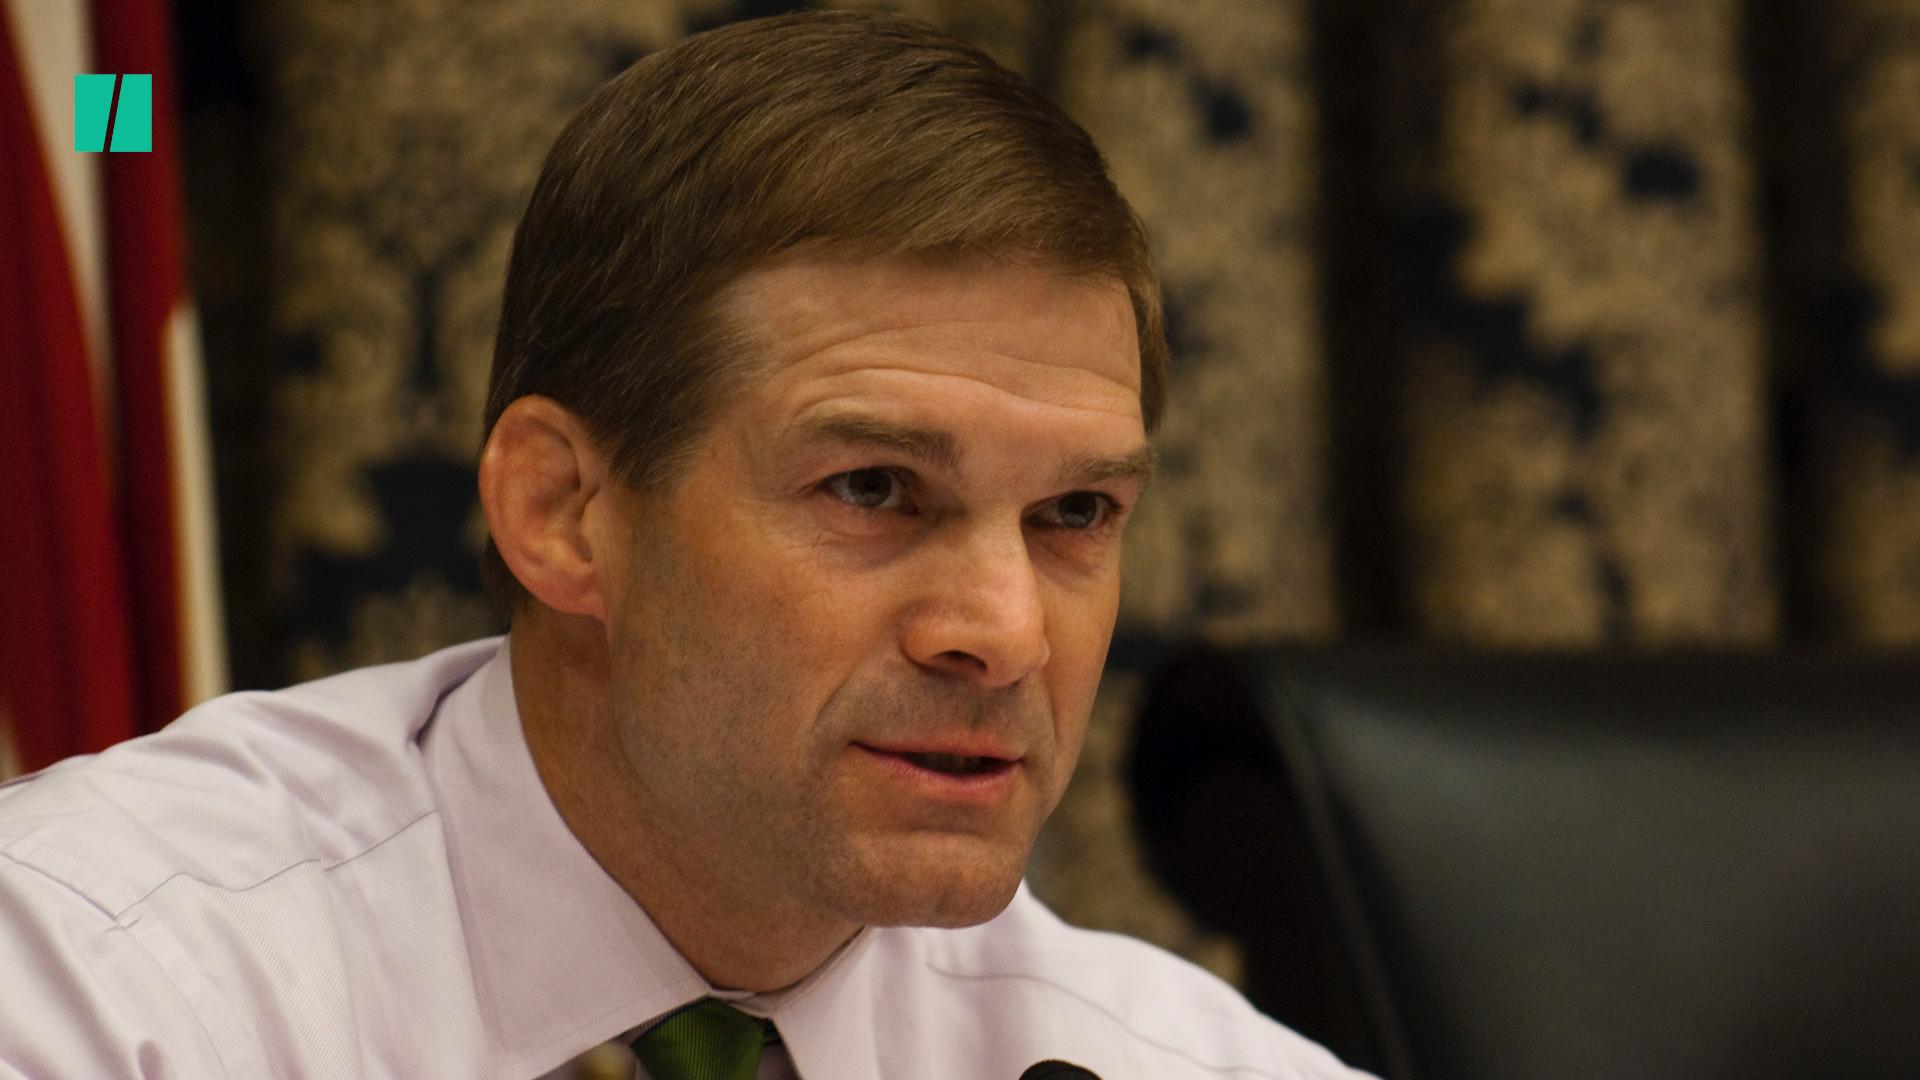 Rep. Jim Jordan Denies Most Recent Accusation That He Knew Of Sexual Abuse At OSU